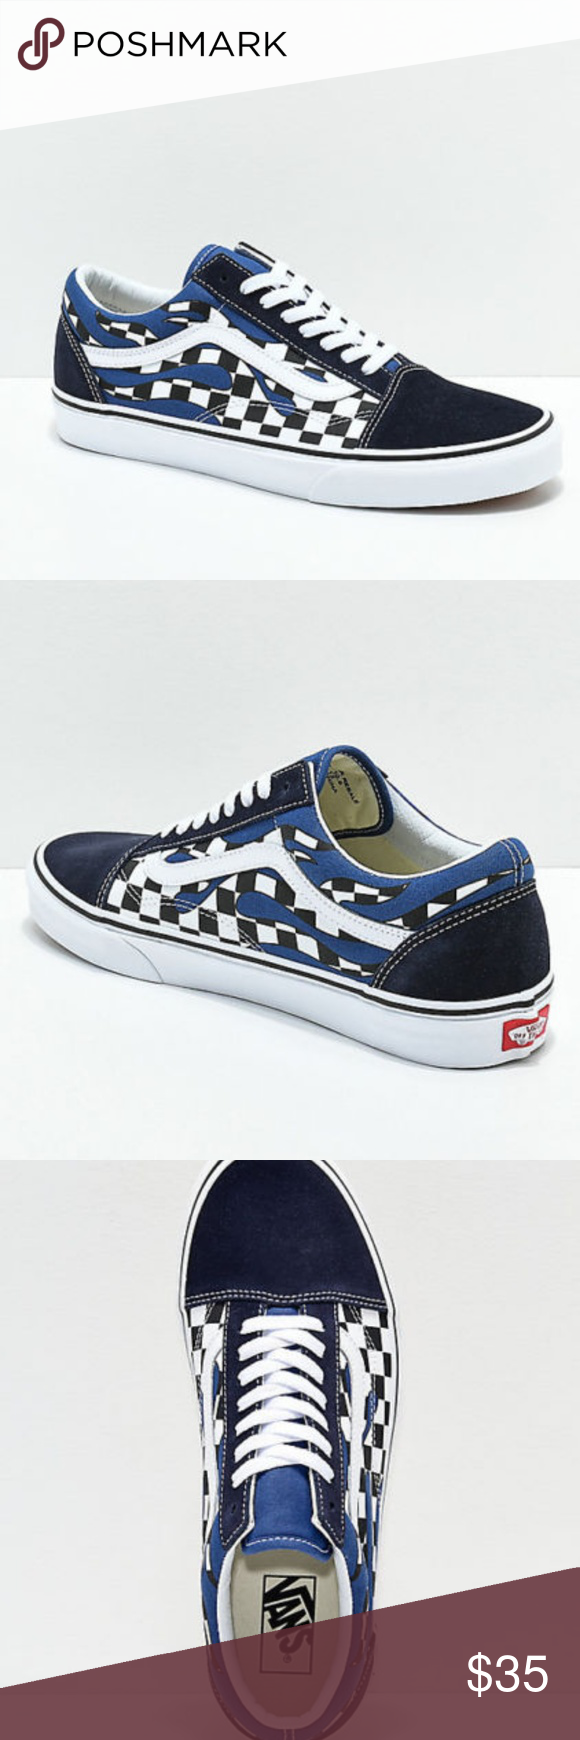 4de2b93f0c Vans Old Skool Checkerboard Flame Navy   White Skate Shoes Add classic  skate styling to your everyday looks with the Old Skool Checkerboard Flame  Navy ...